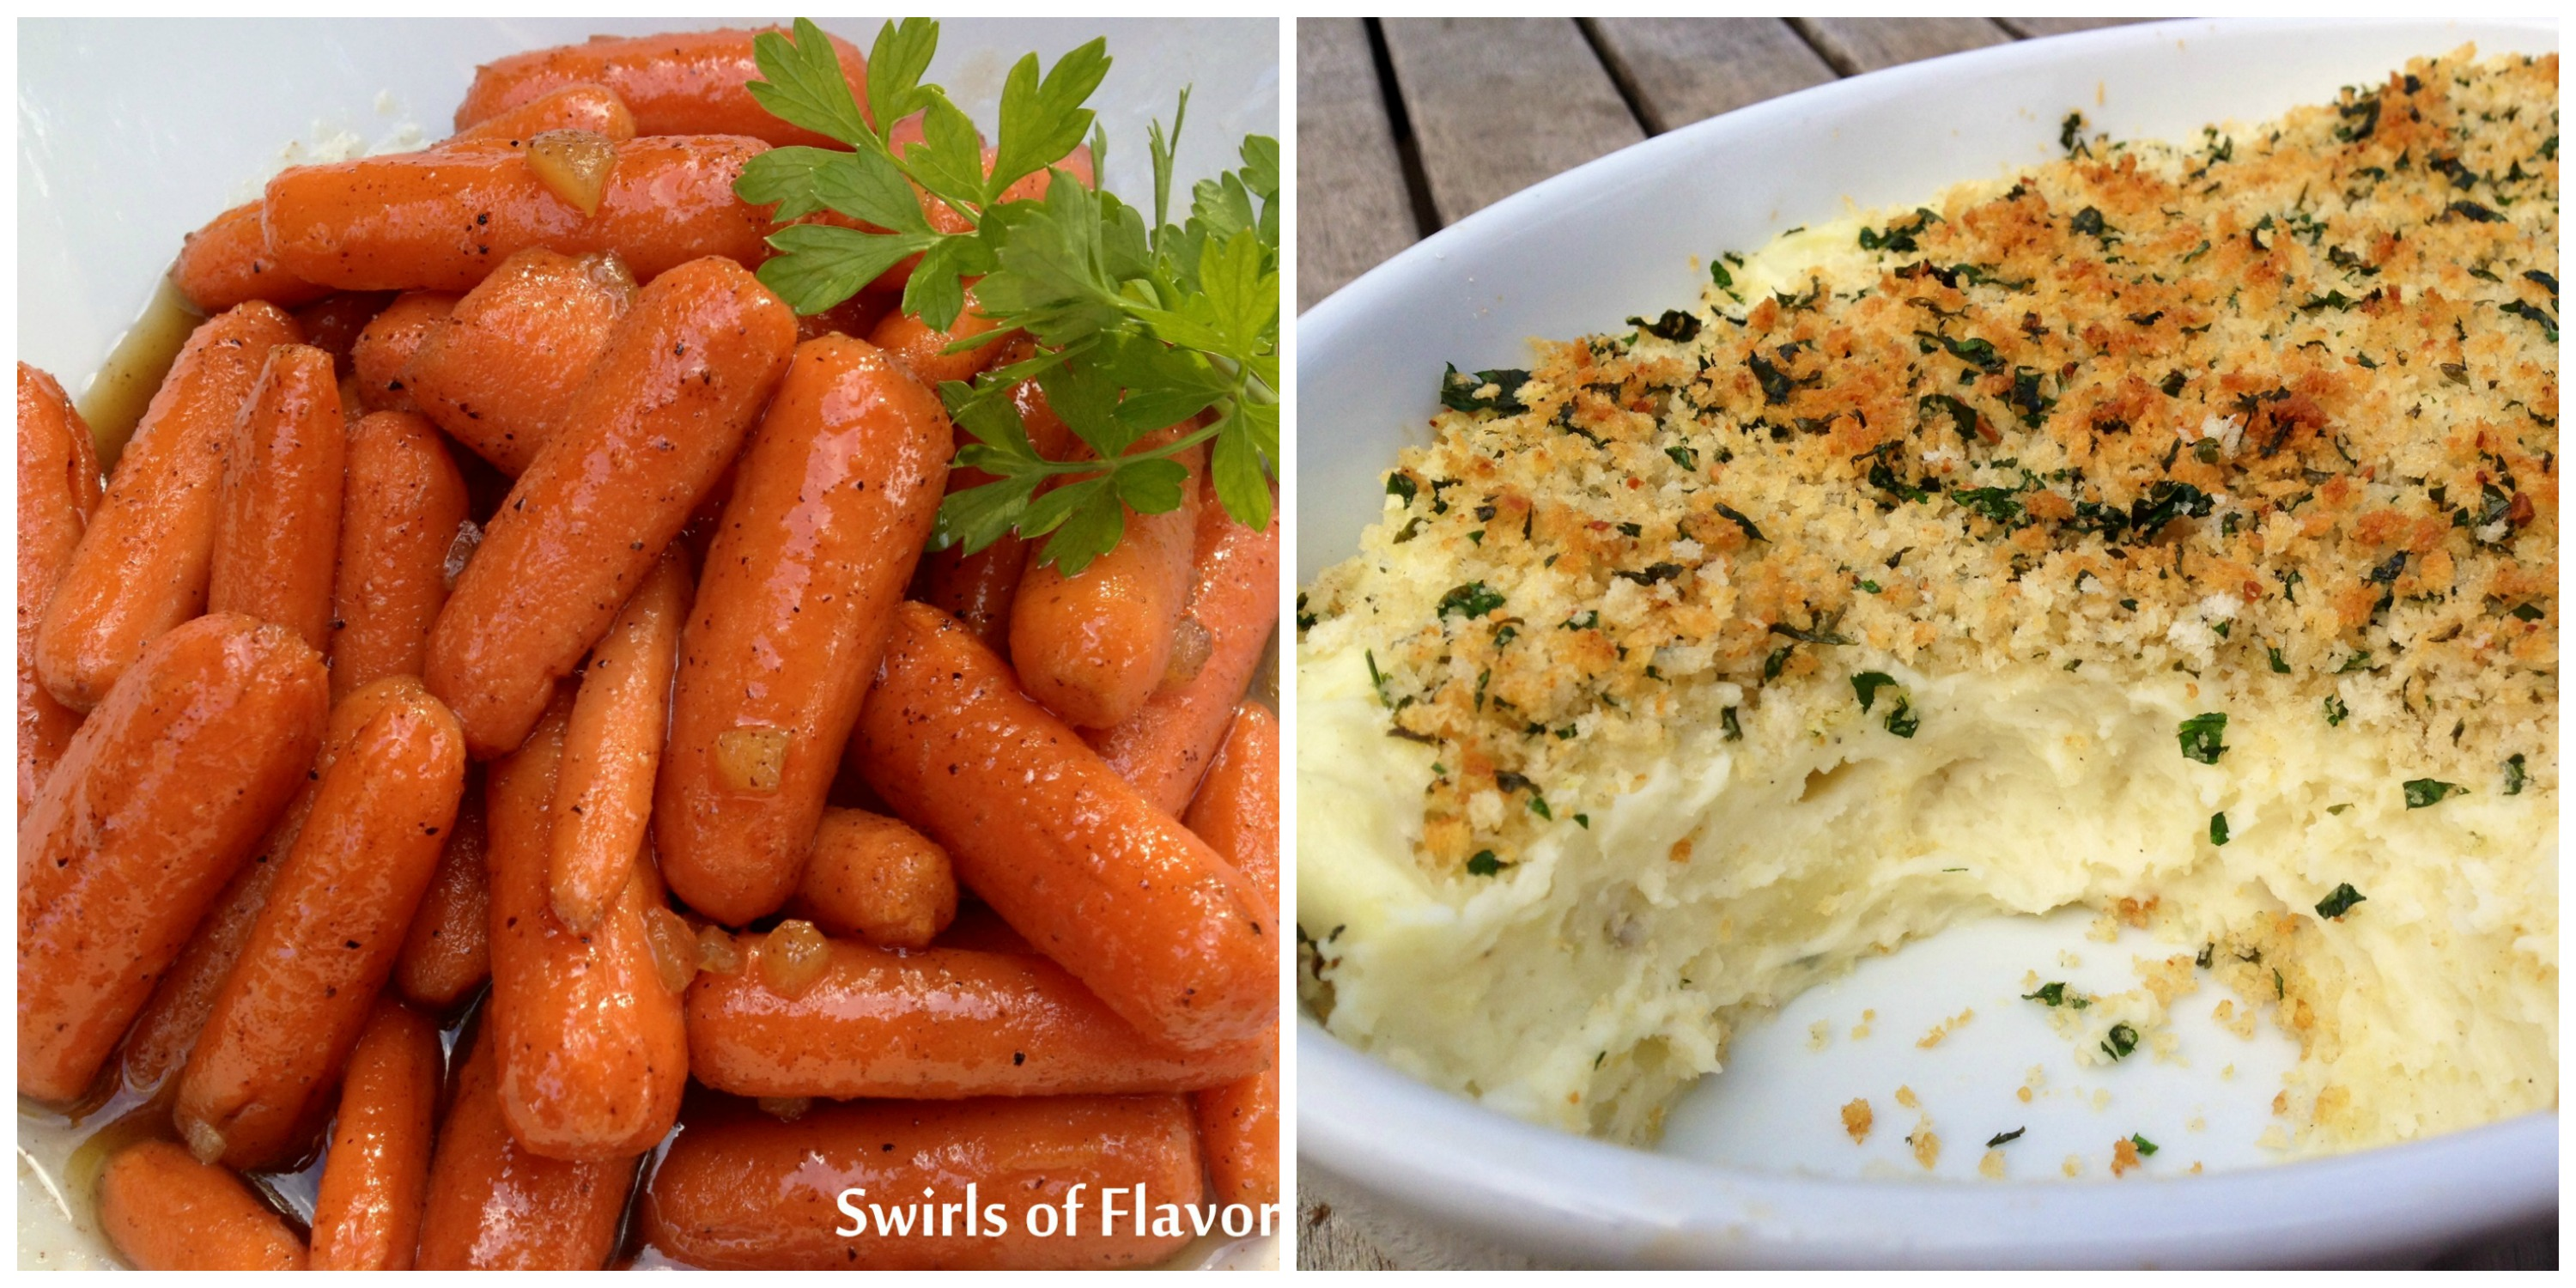 Gingered Carrots and Panko Mashed Potatoes